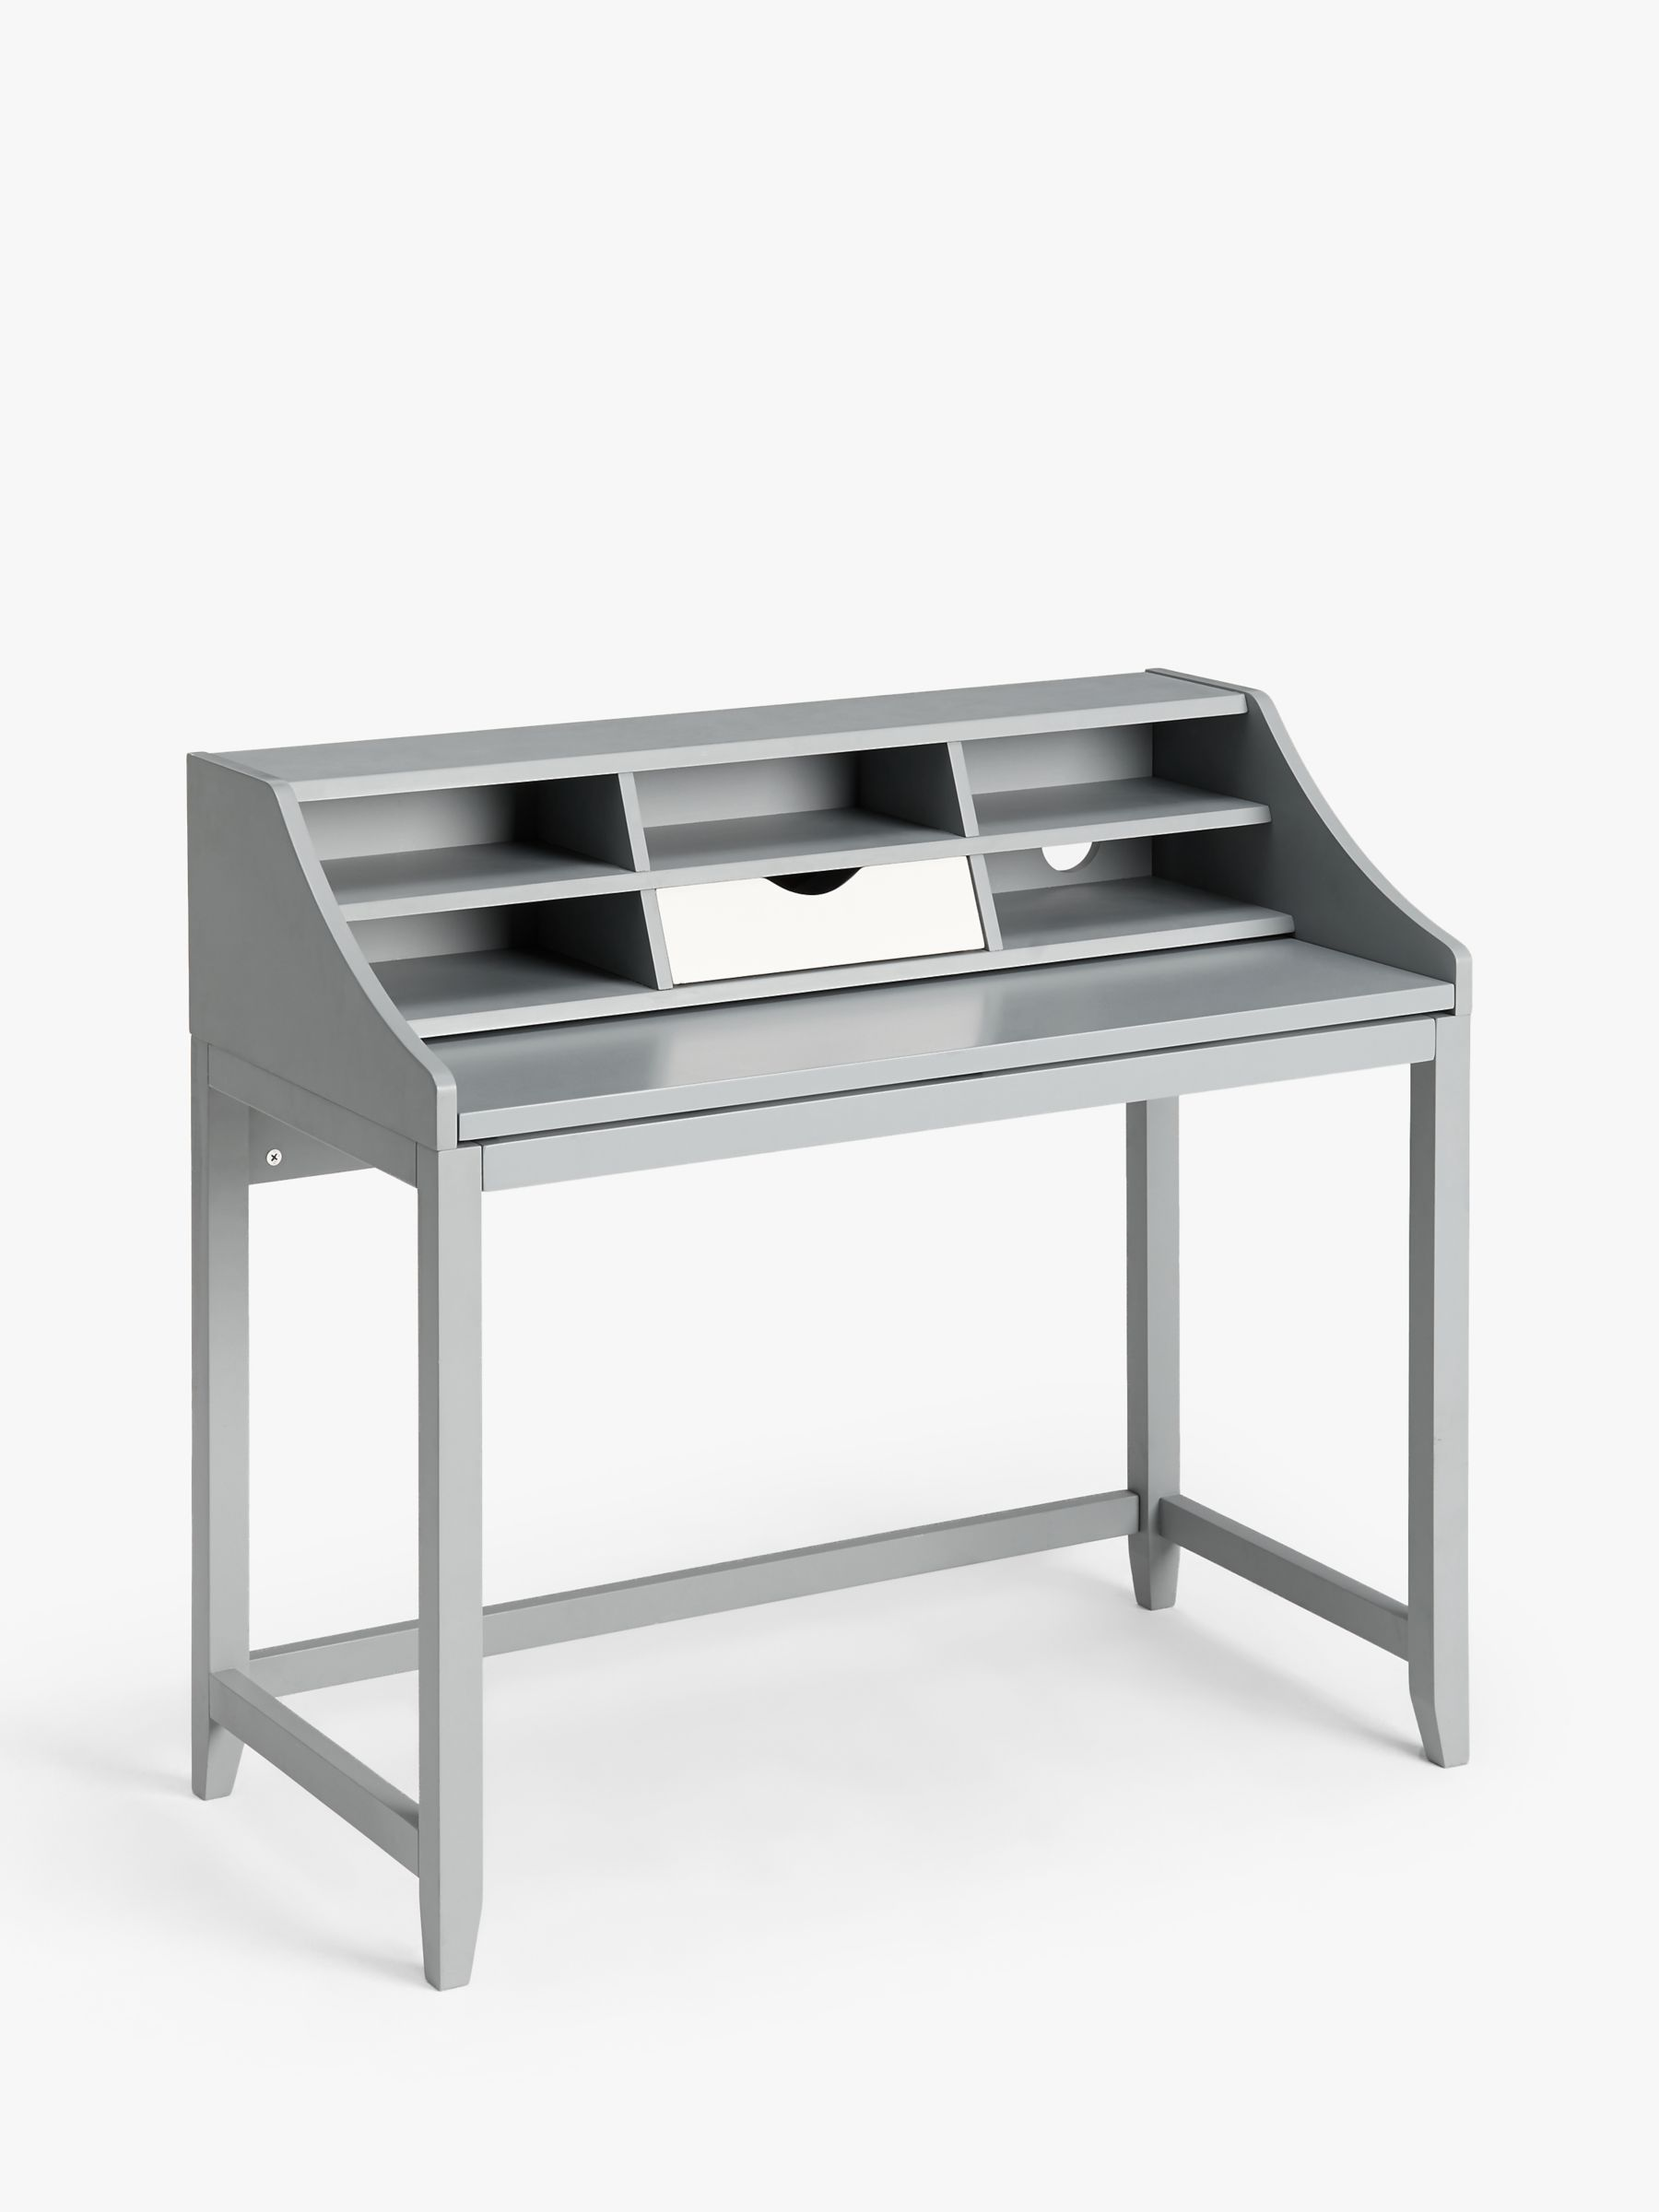 Loft Desk for working from home or office